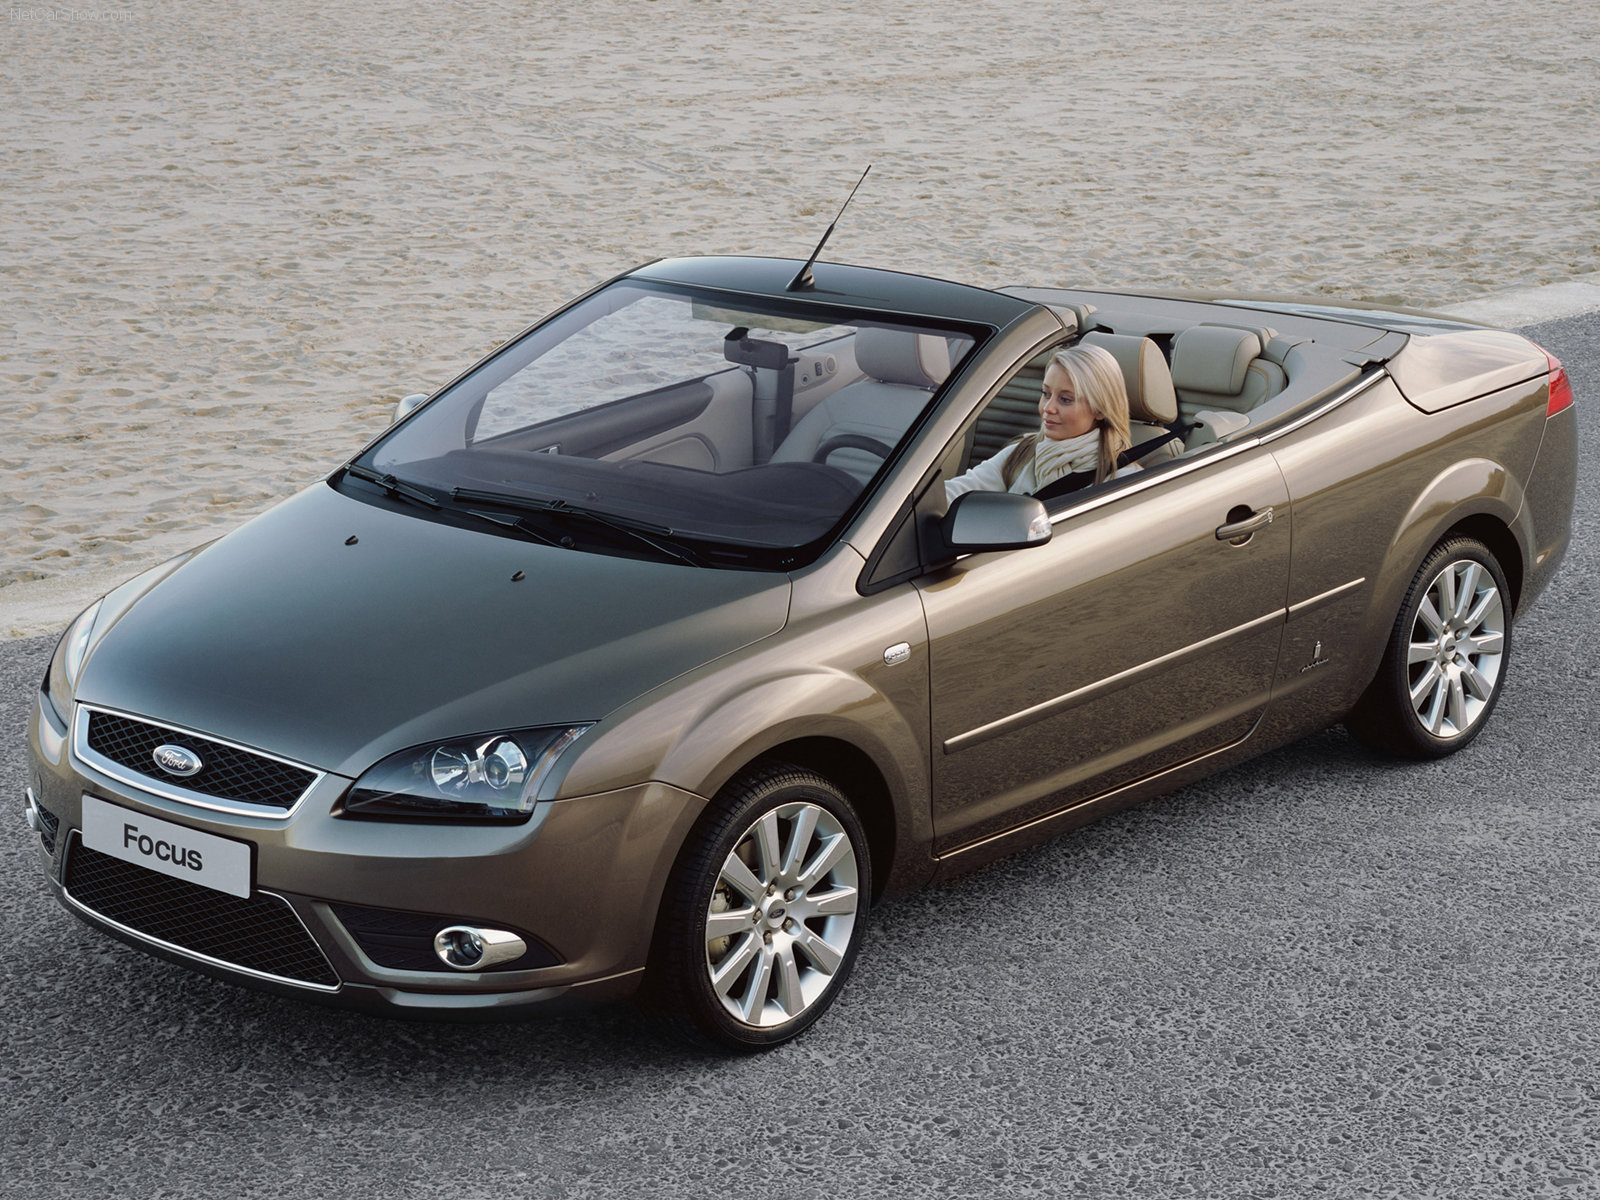 ford focus coupe cabriolet photos photogallery with 21 pics. Black Bedroom Furniture Sets. Home Design Ideas